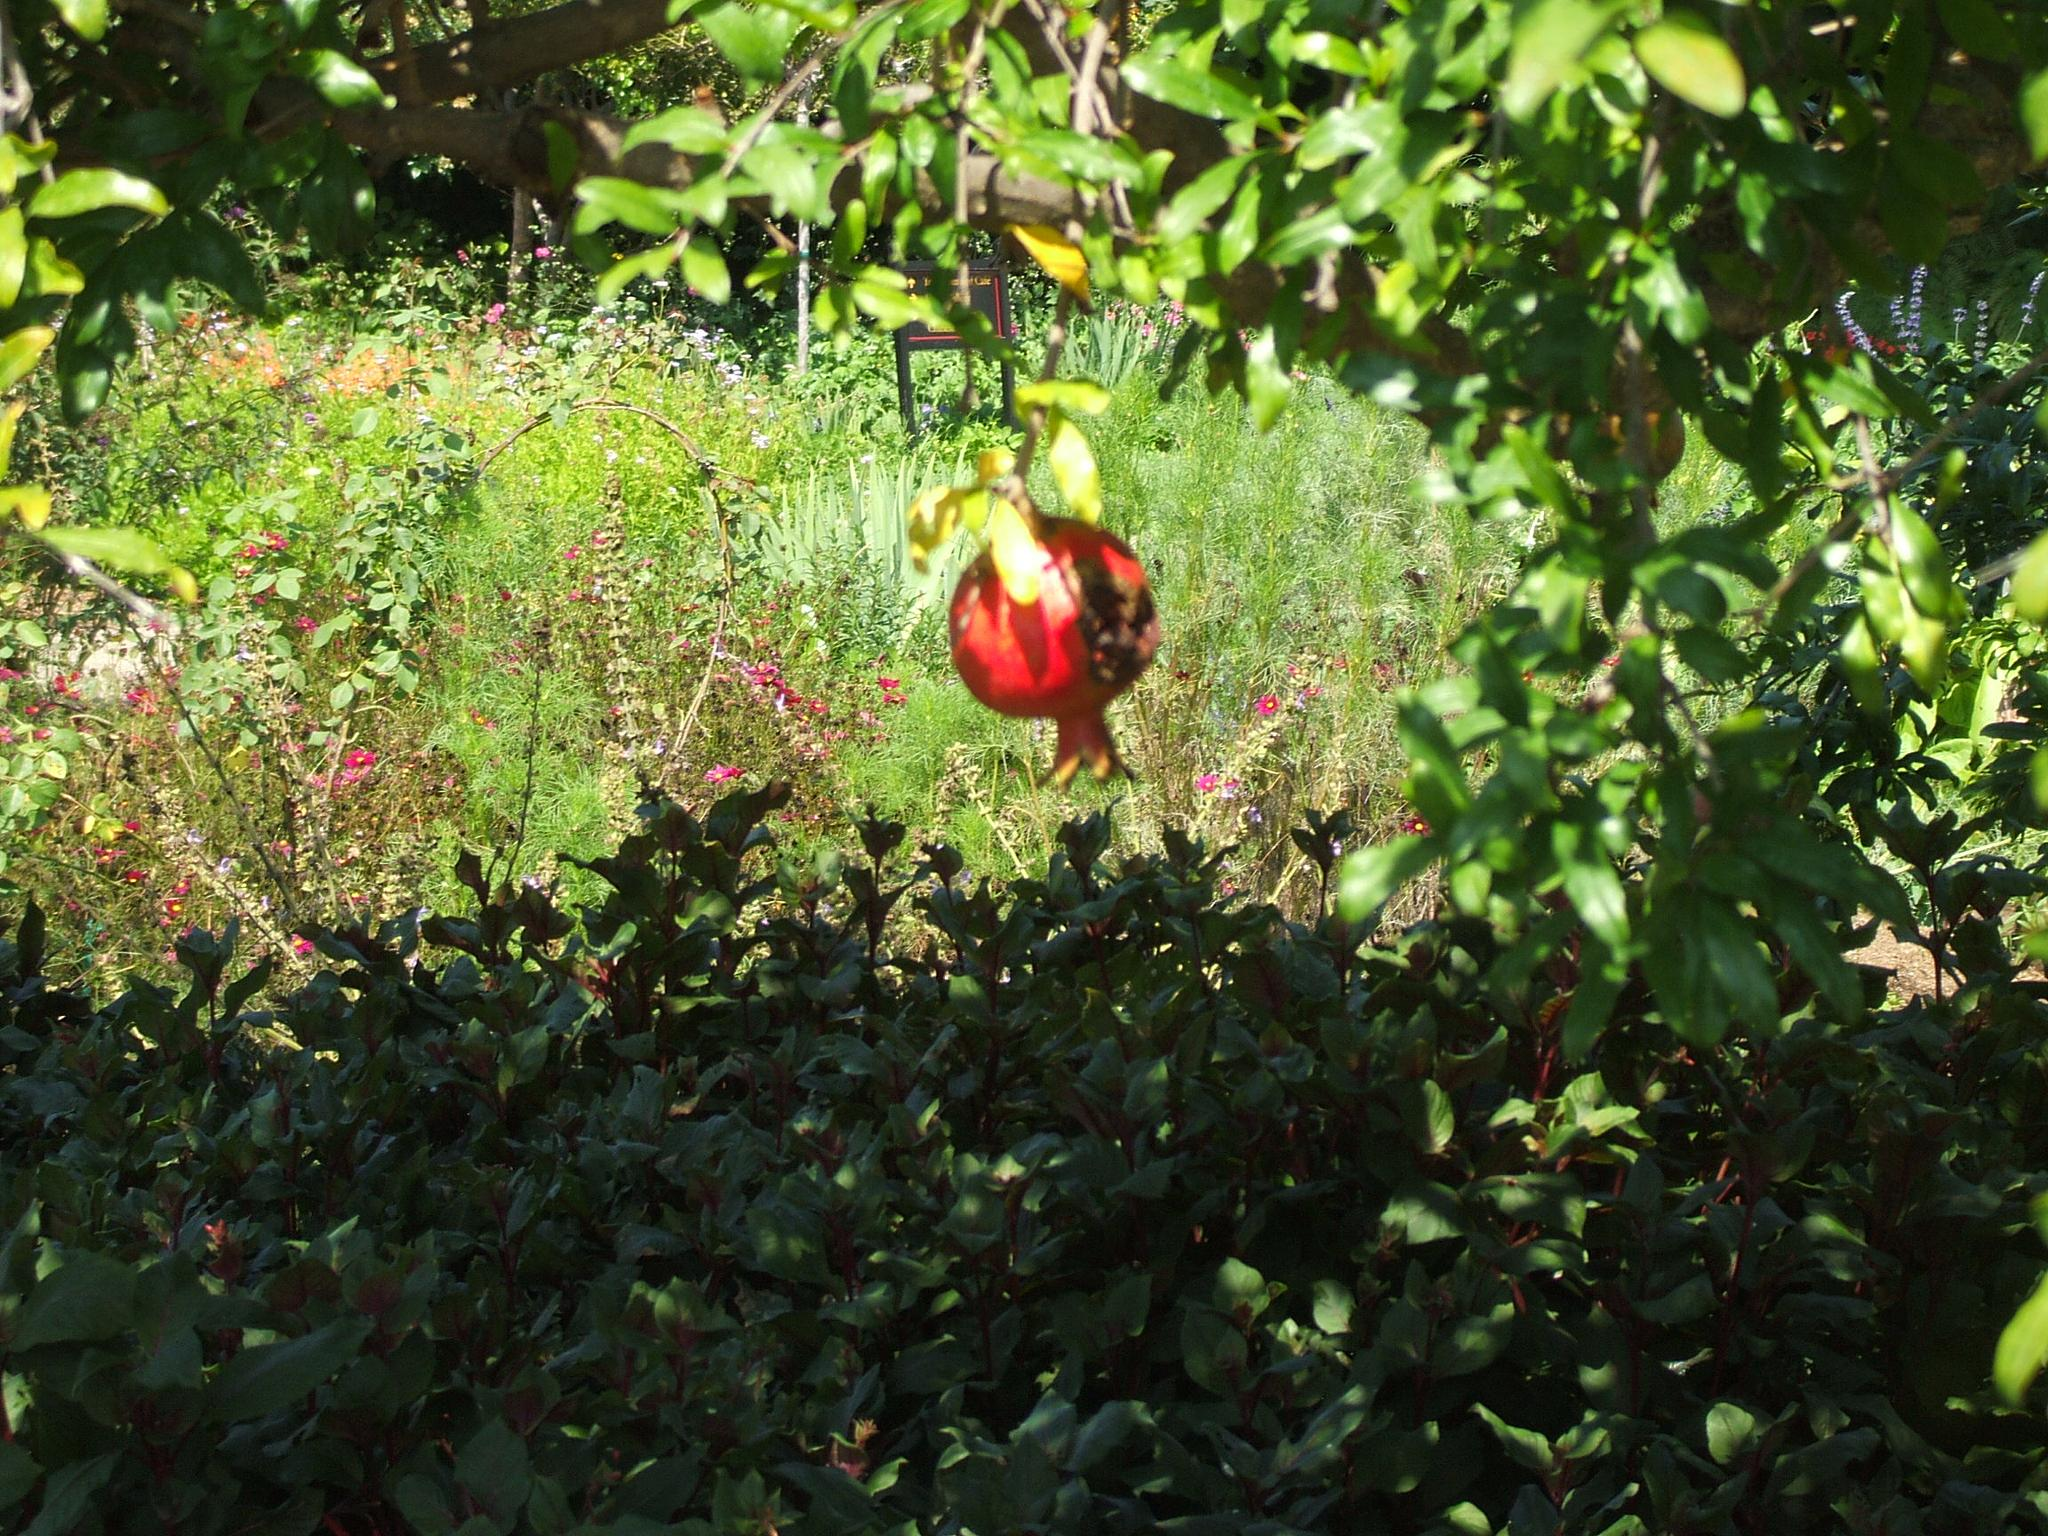 Perfect Pomegranate by CatmotherMissKitty